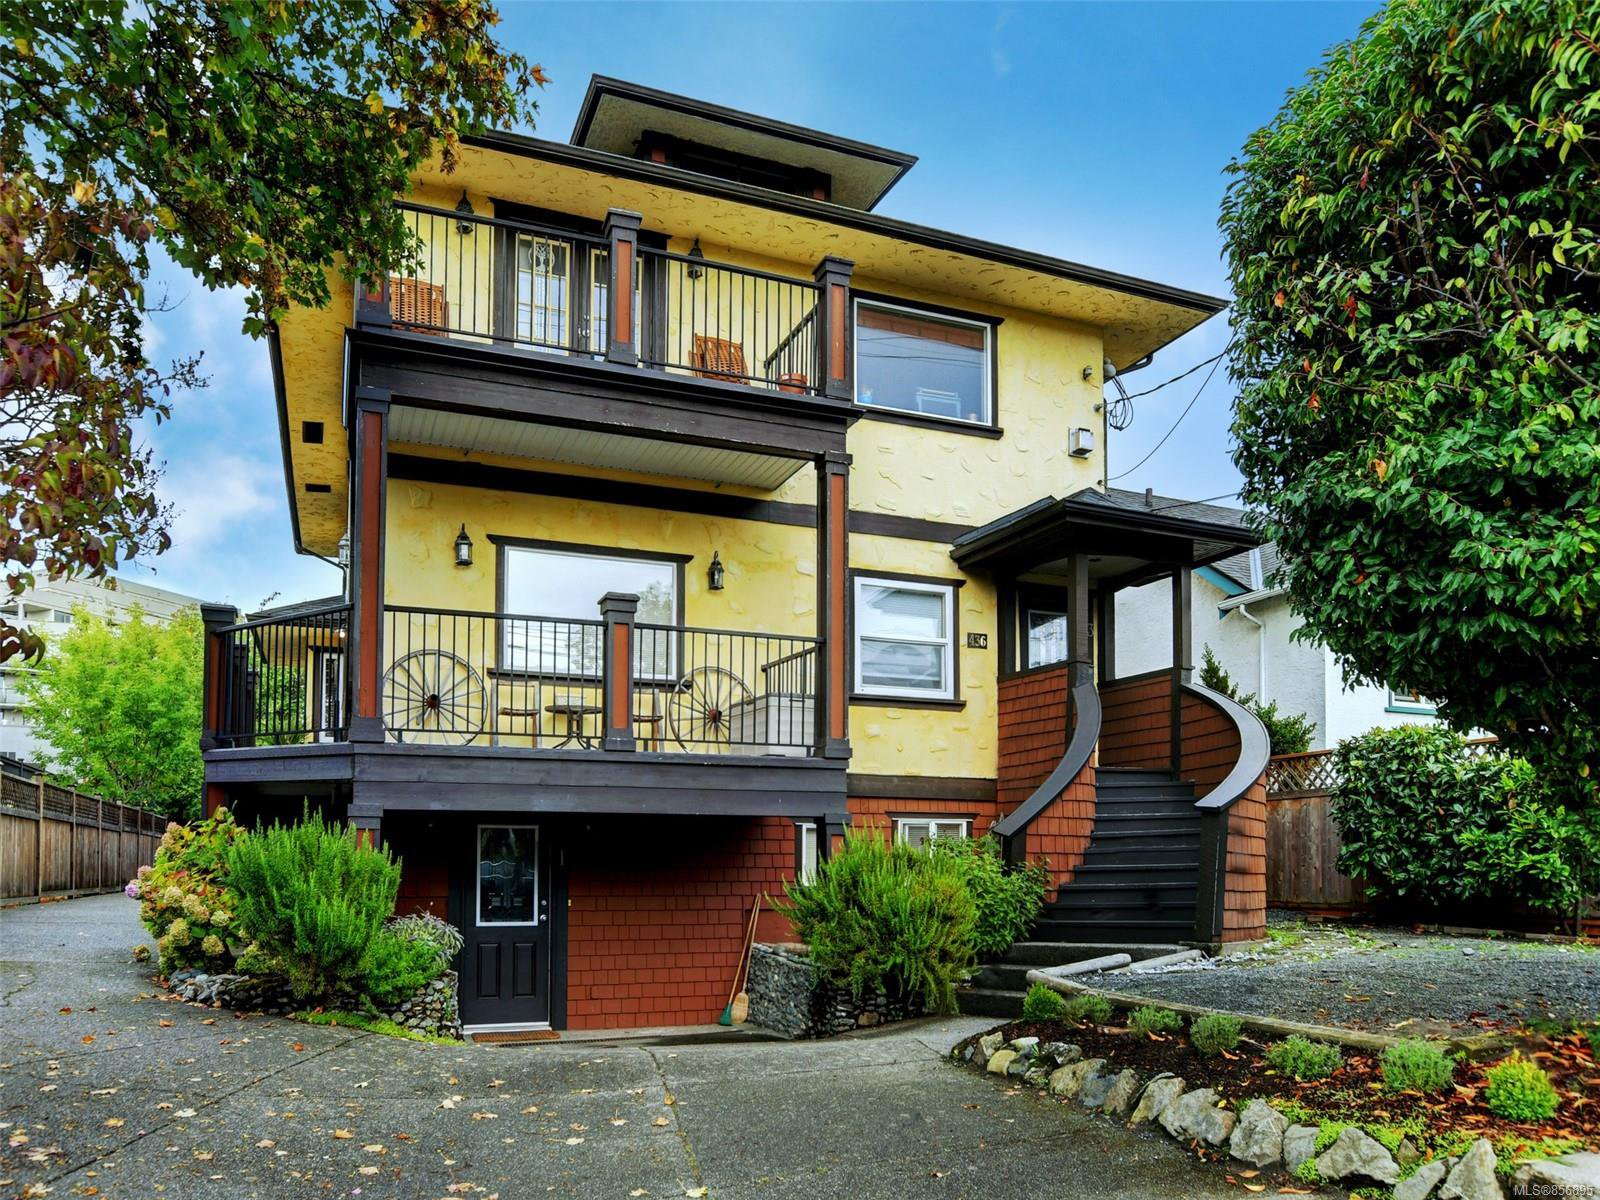 Main Photo: 2 436 Niagara St in : Vi James Bay Row/Townhouse for sale (Victoria)  : MLS®# 856895